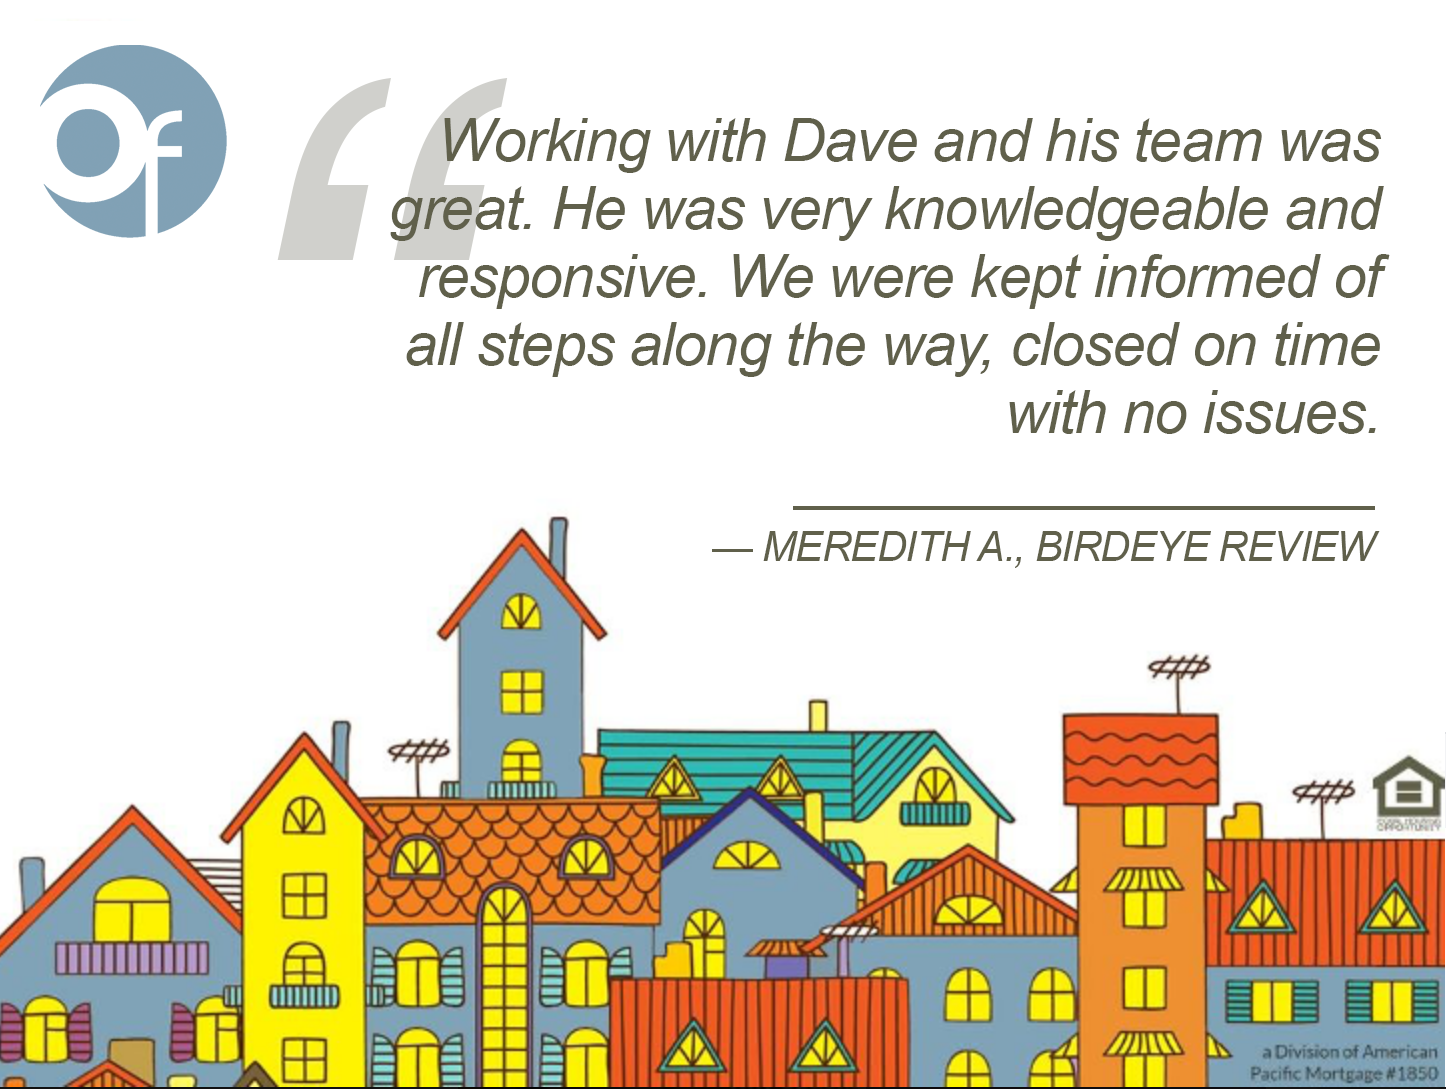 Working with Dave and his team was great. He was very knowledgeable and responsive. We were kept informed of all steps along the way, closed on time with no issues.